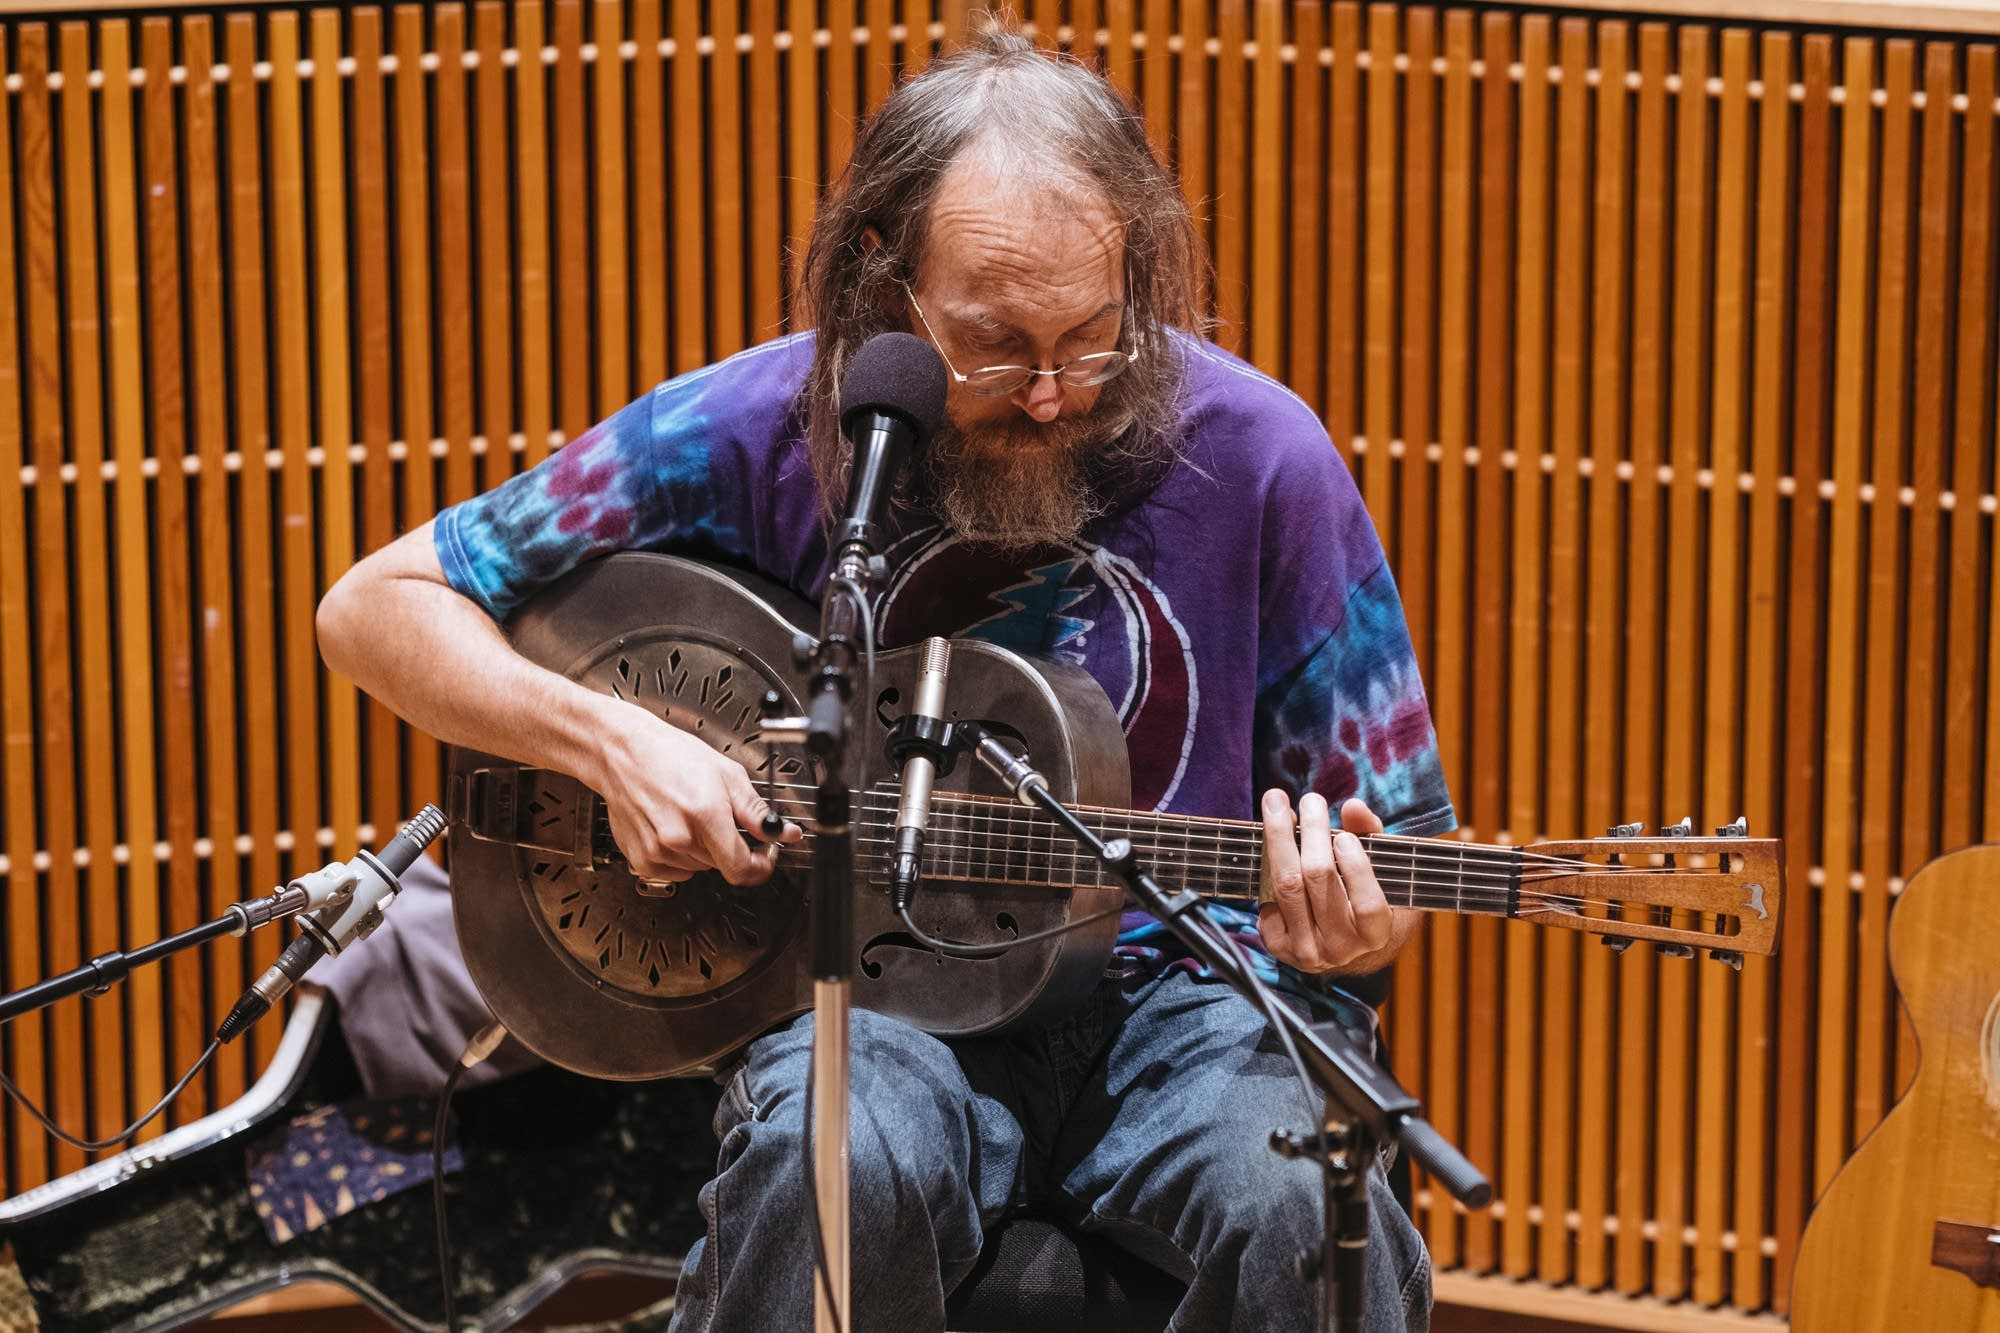 Charlie Parr performs in Studio M.